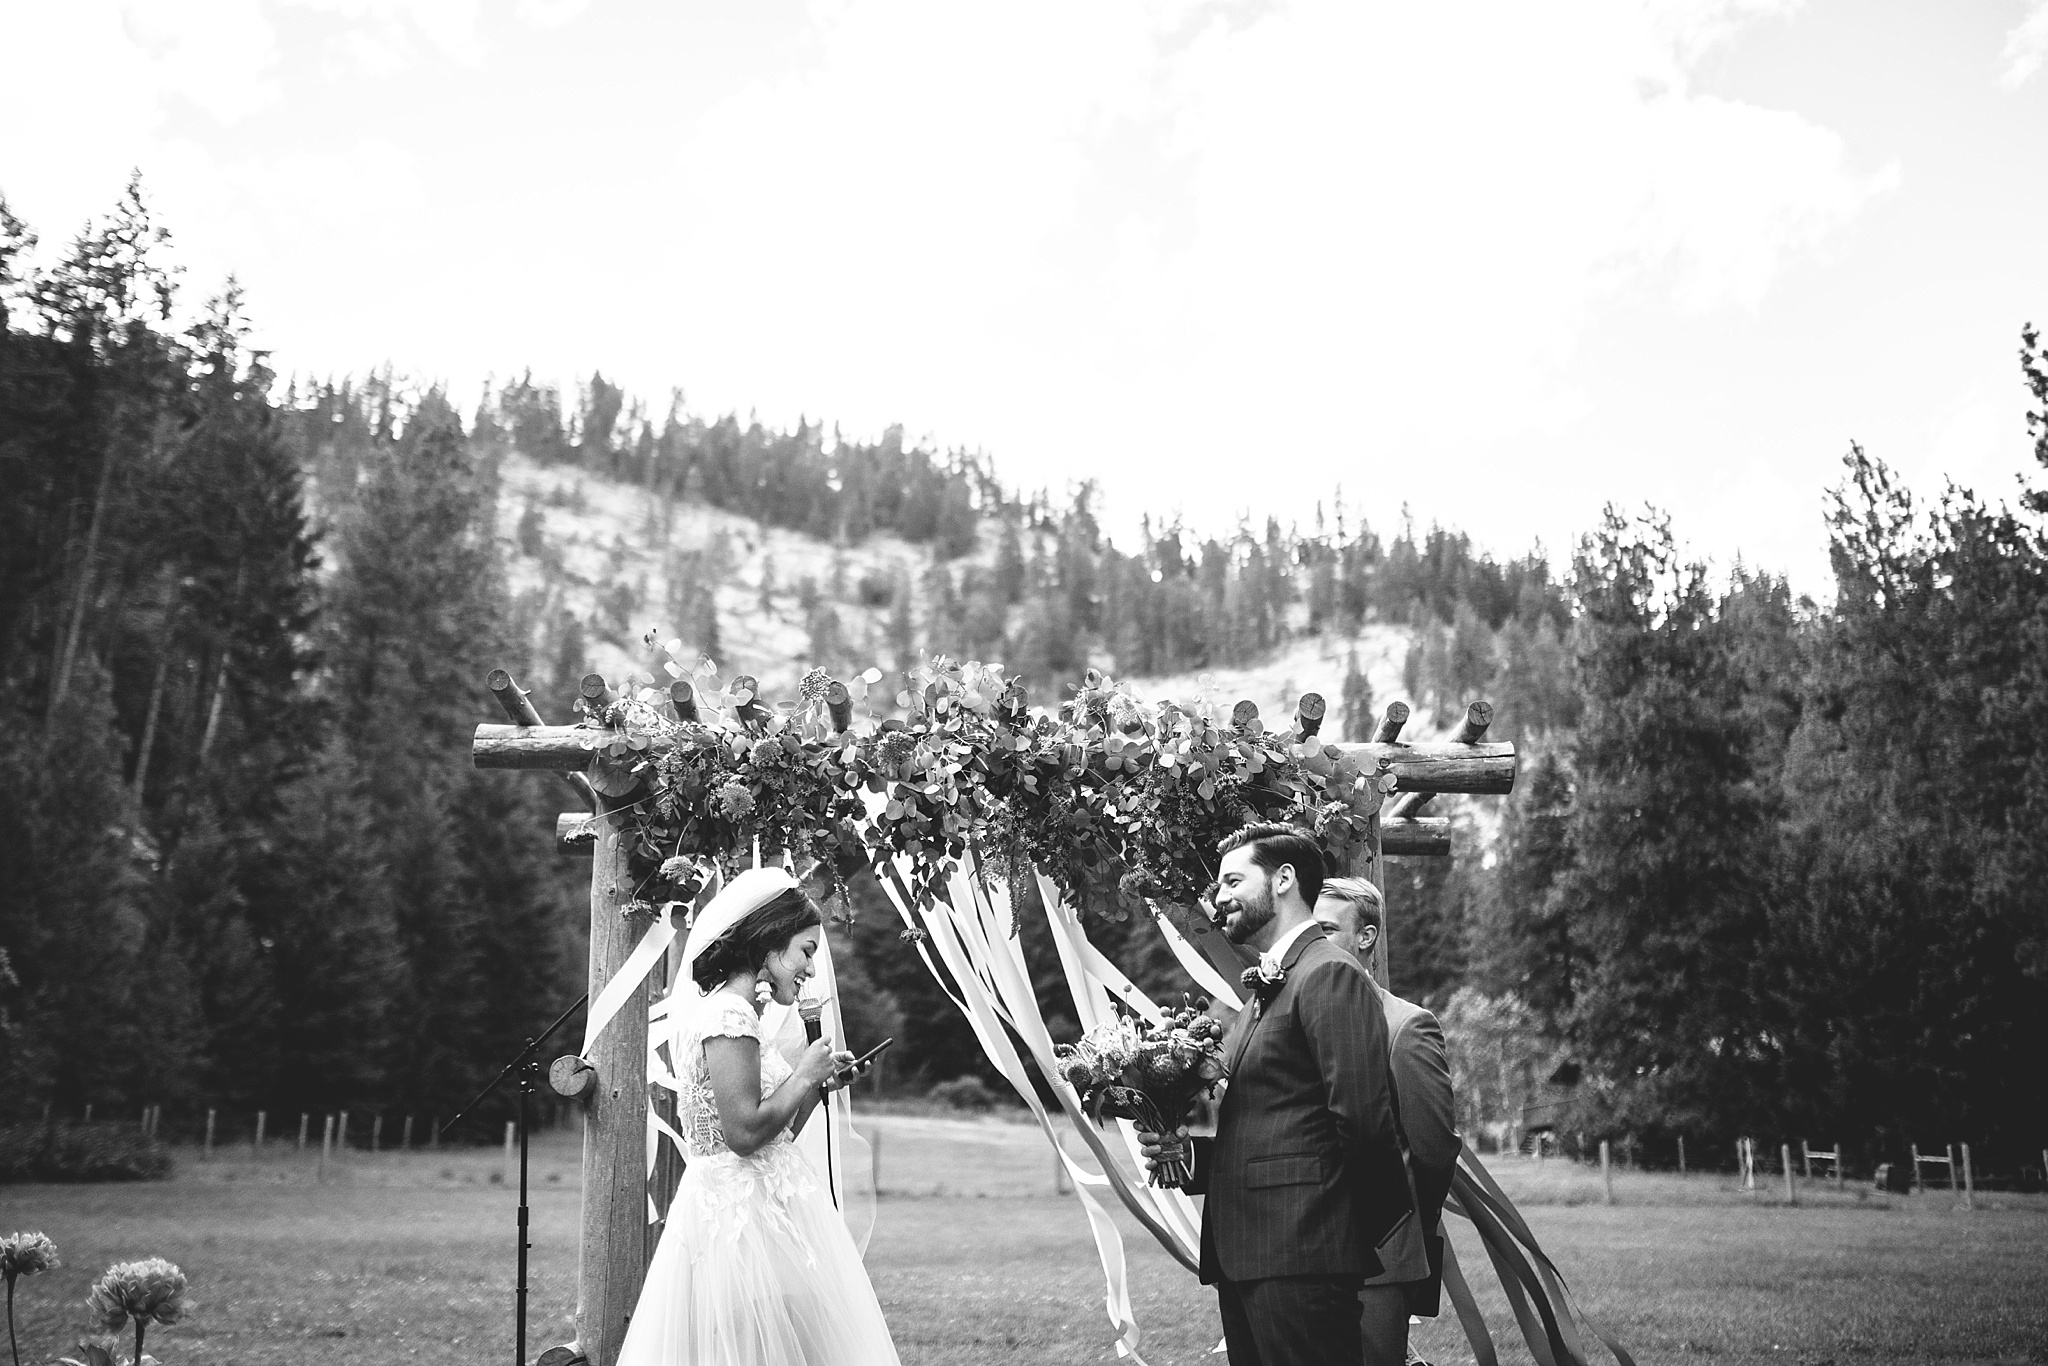 outdoor nature wedding ceremony